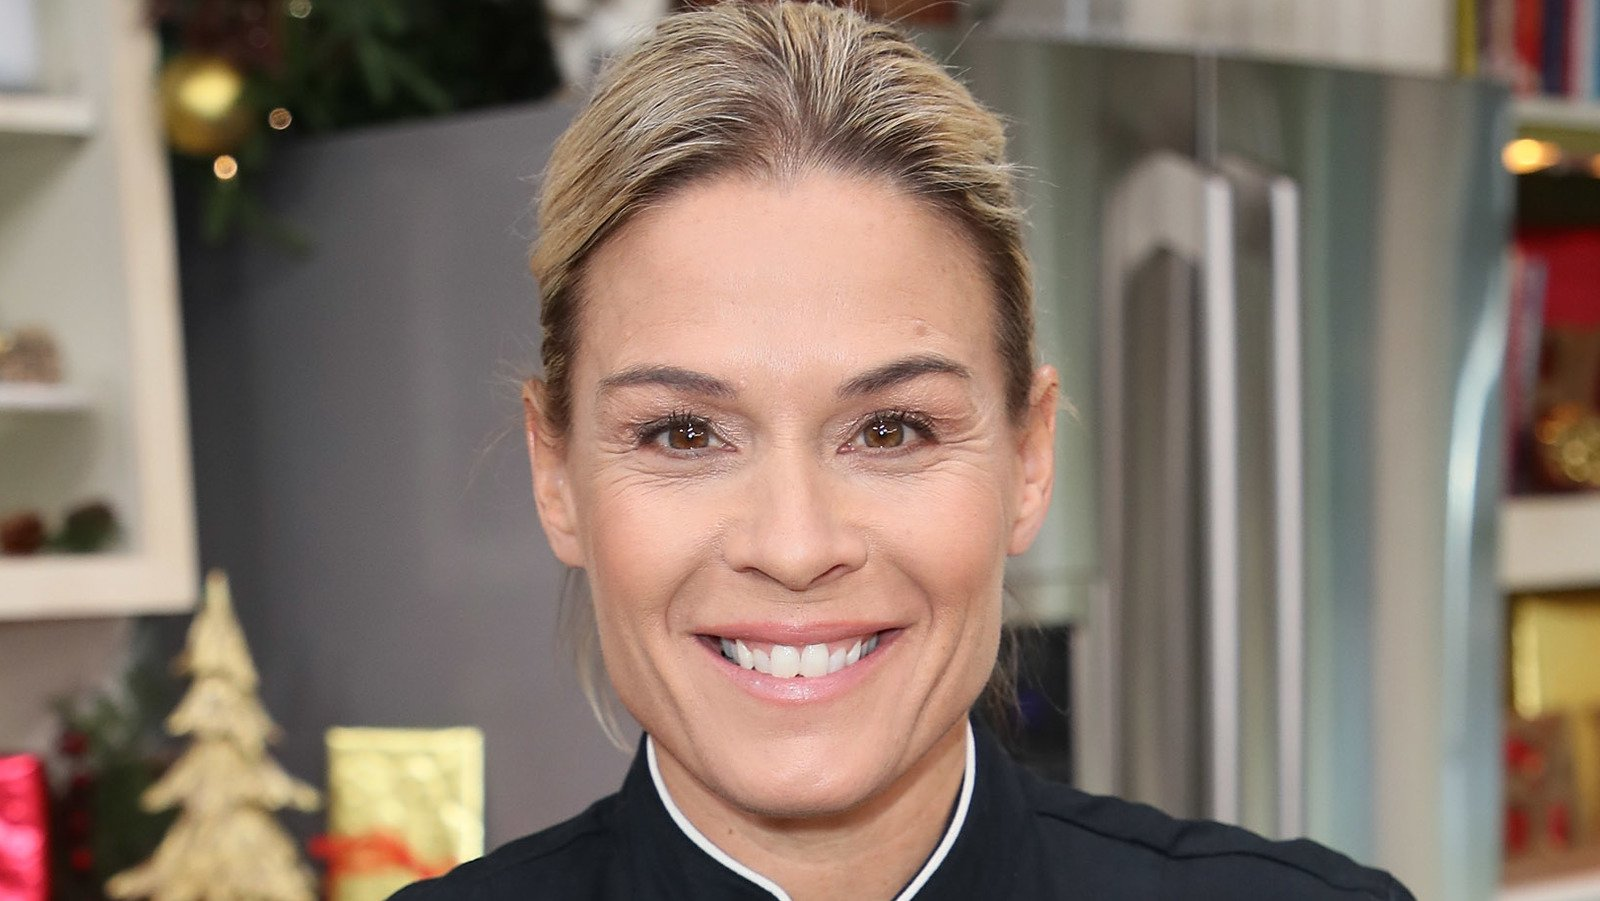 What The Food Network Hasn't Told You About Cat Cora